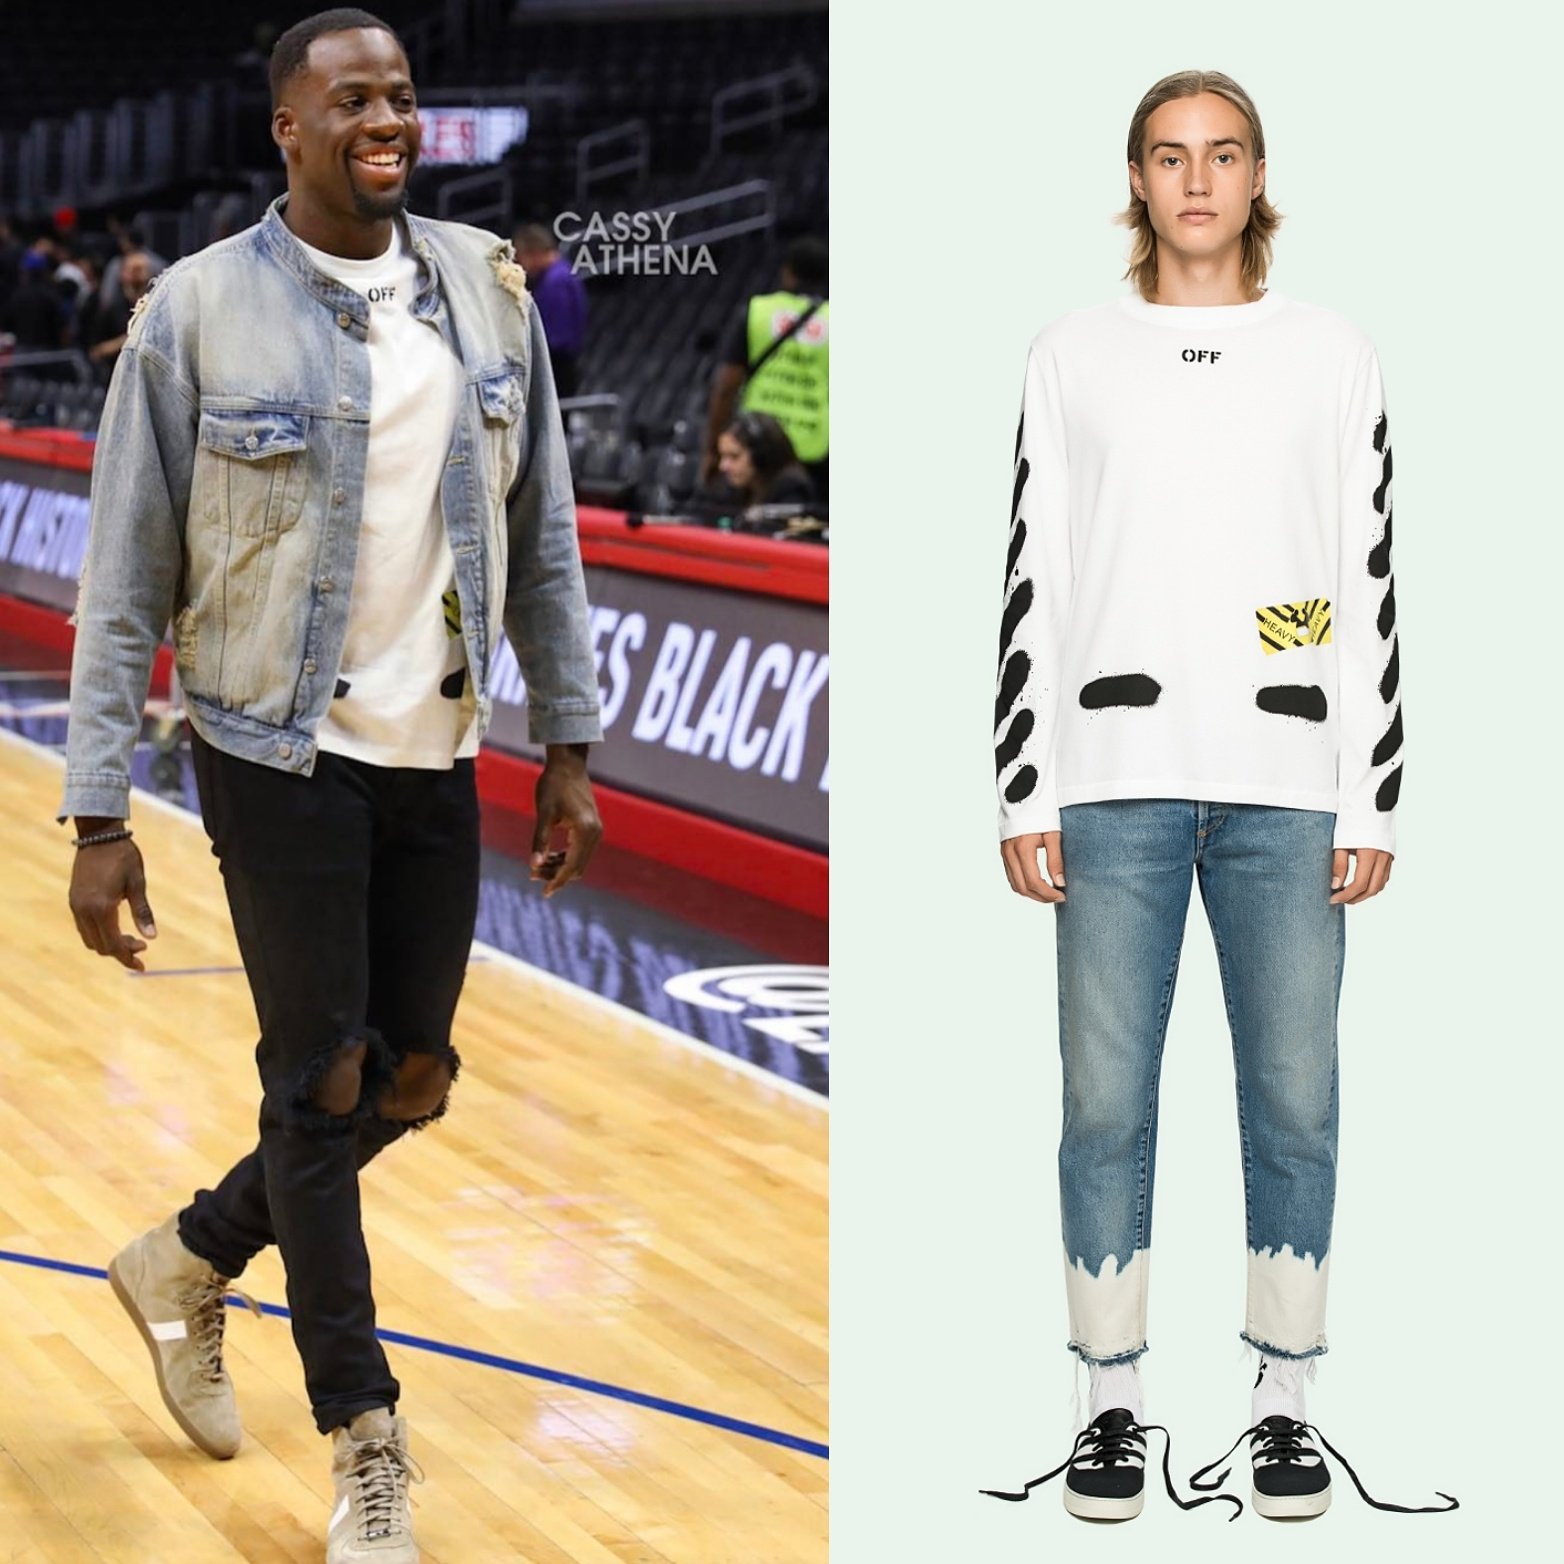 Draymond Green's Daniel Patrick Men's Fashion Jacket, Off-White Men's Fashion Shirt And Dior High-Top Sneakers